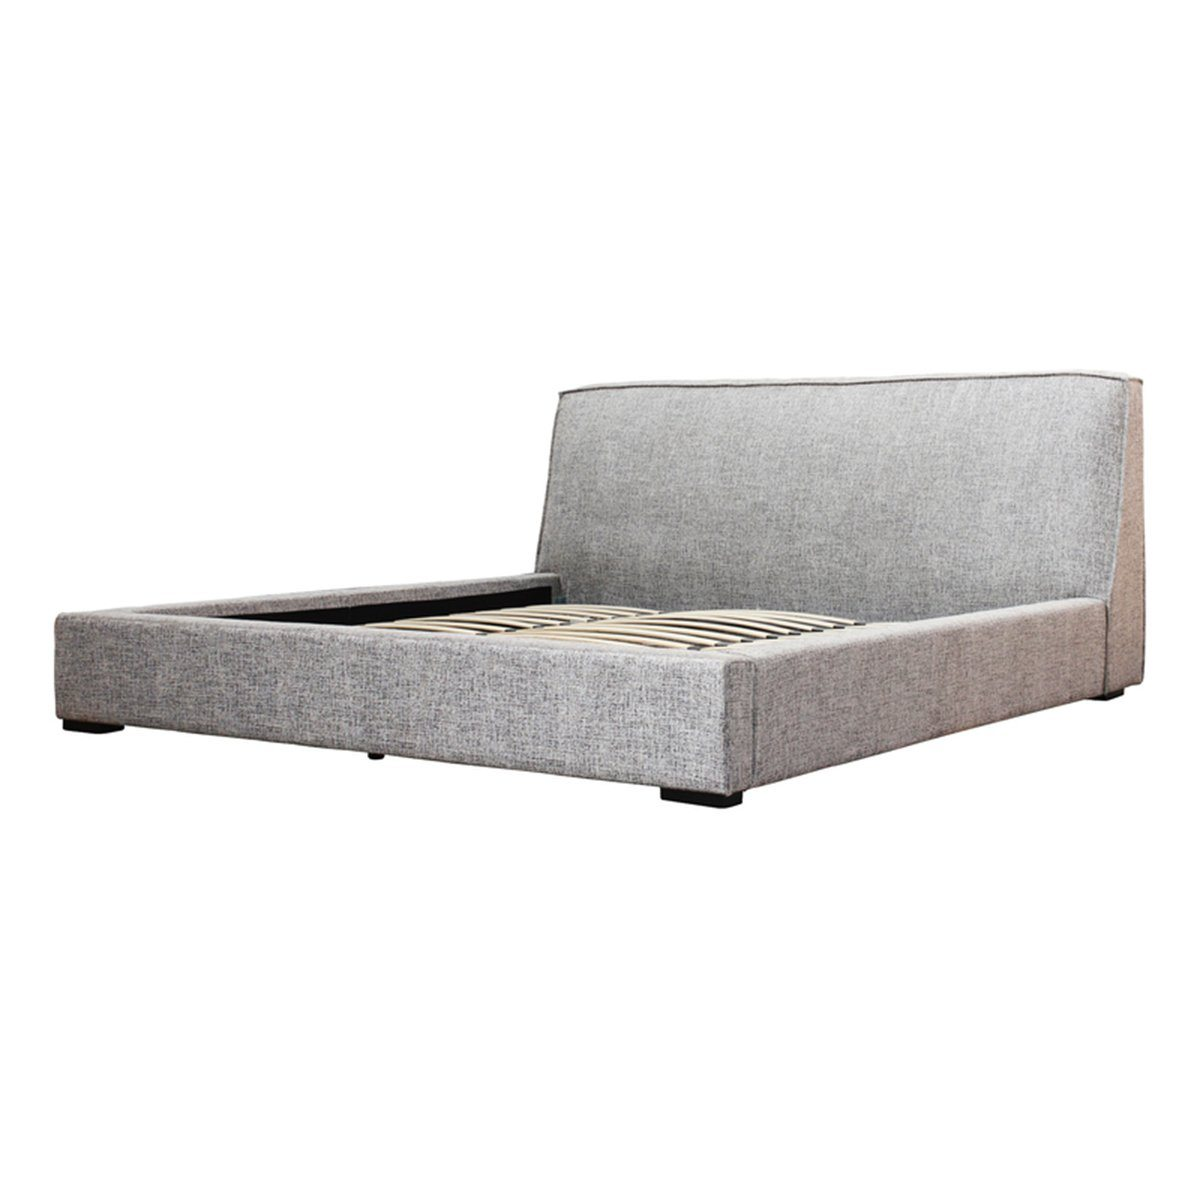 QUEEN BED - TWEED GREY FABRIC - Showhome Furniture